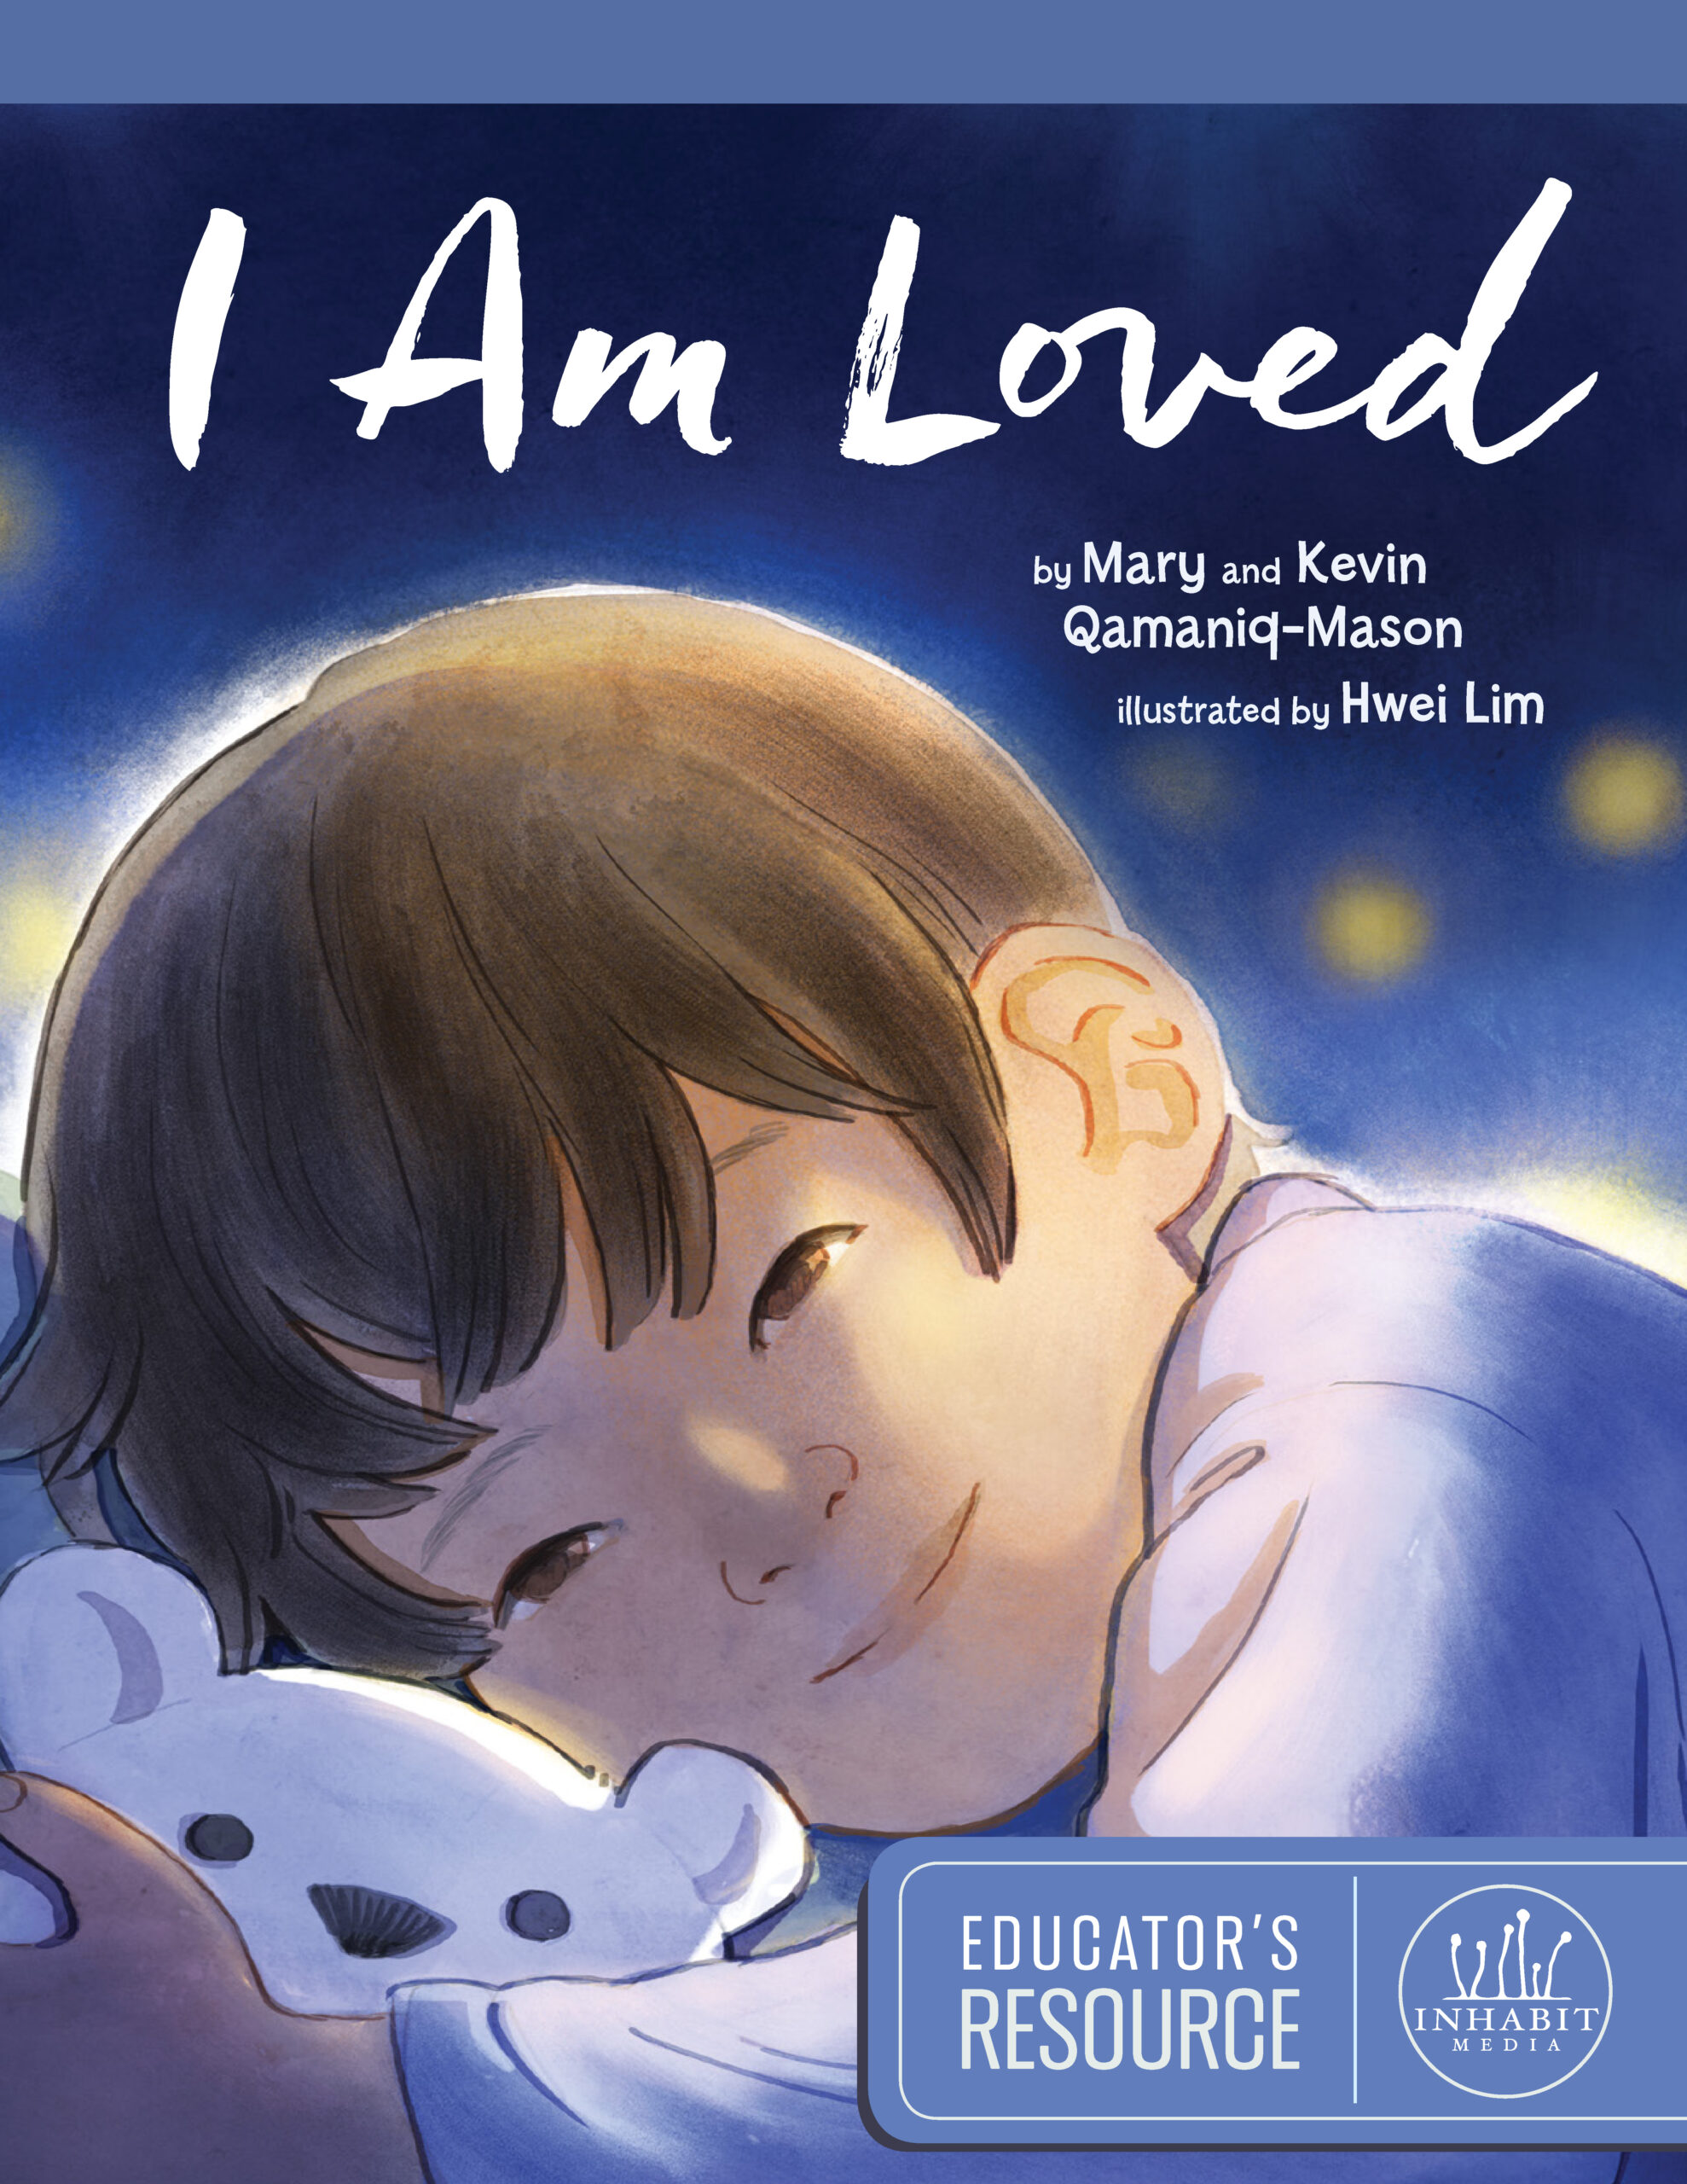 I Am Loved front cover image